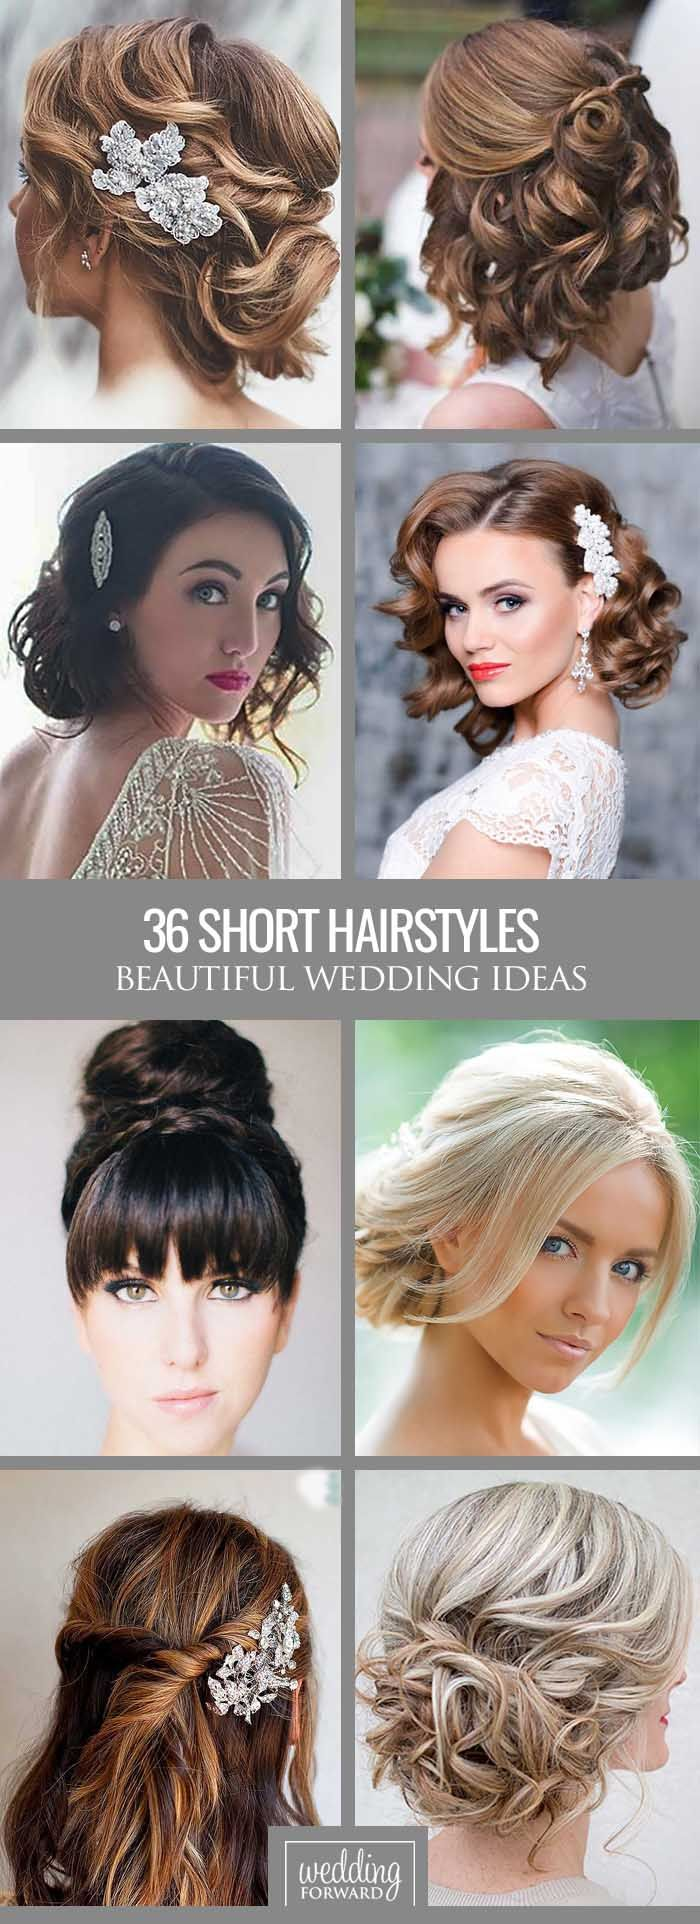 36 Short Wedding Hairstyle Ideas So Good You'd Want To Cut Your Hair ❤ If your…